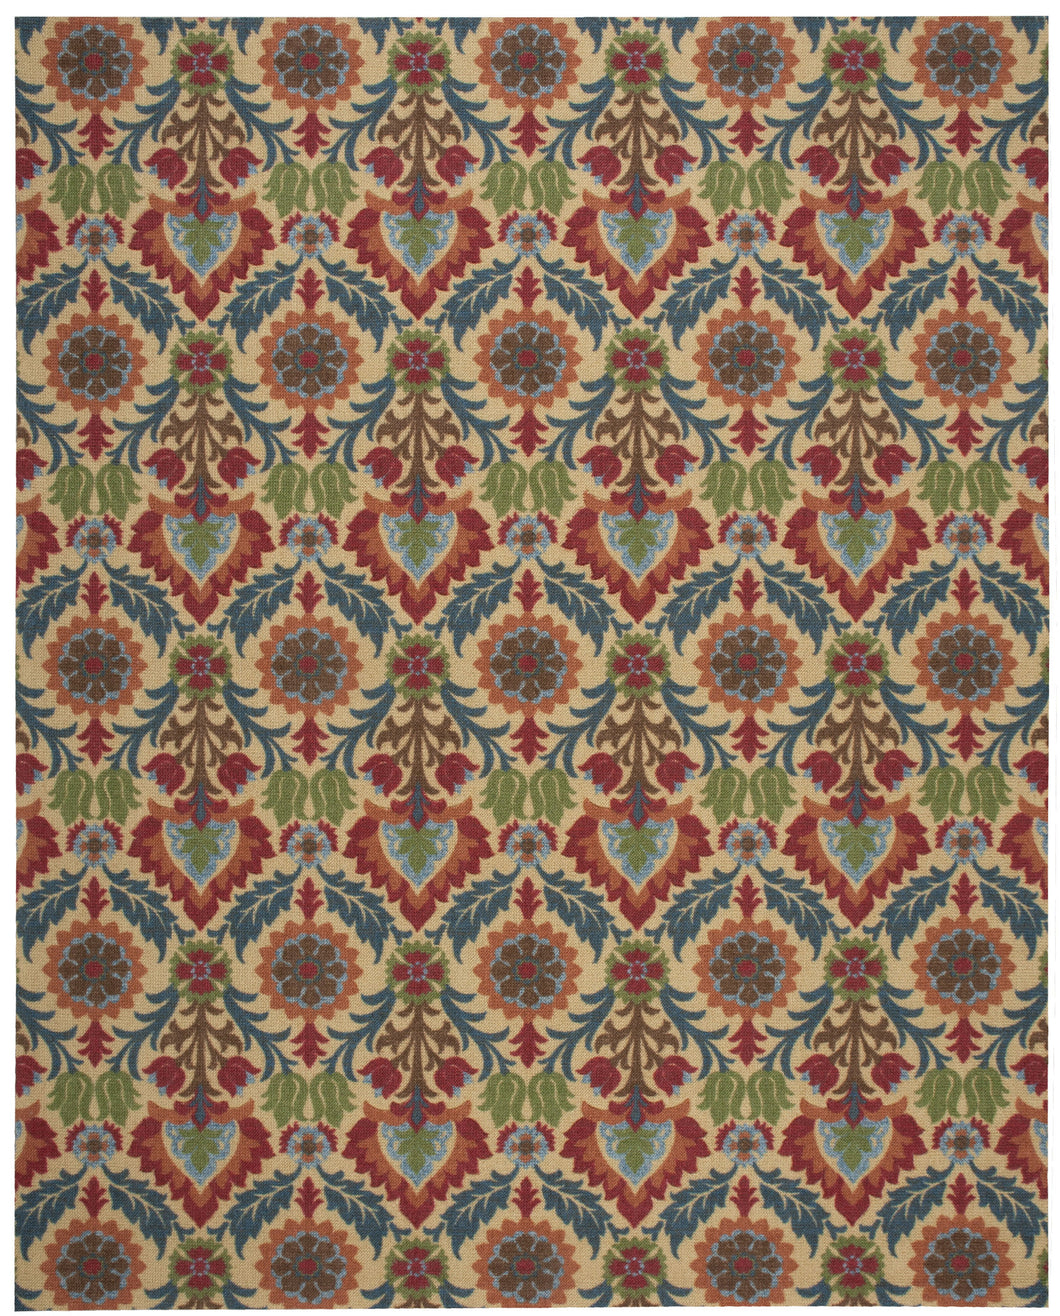 Waverly Global Awakening Santa Maria Spice Area Rug By Nourison WGA03 SPICE